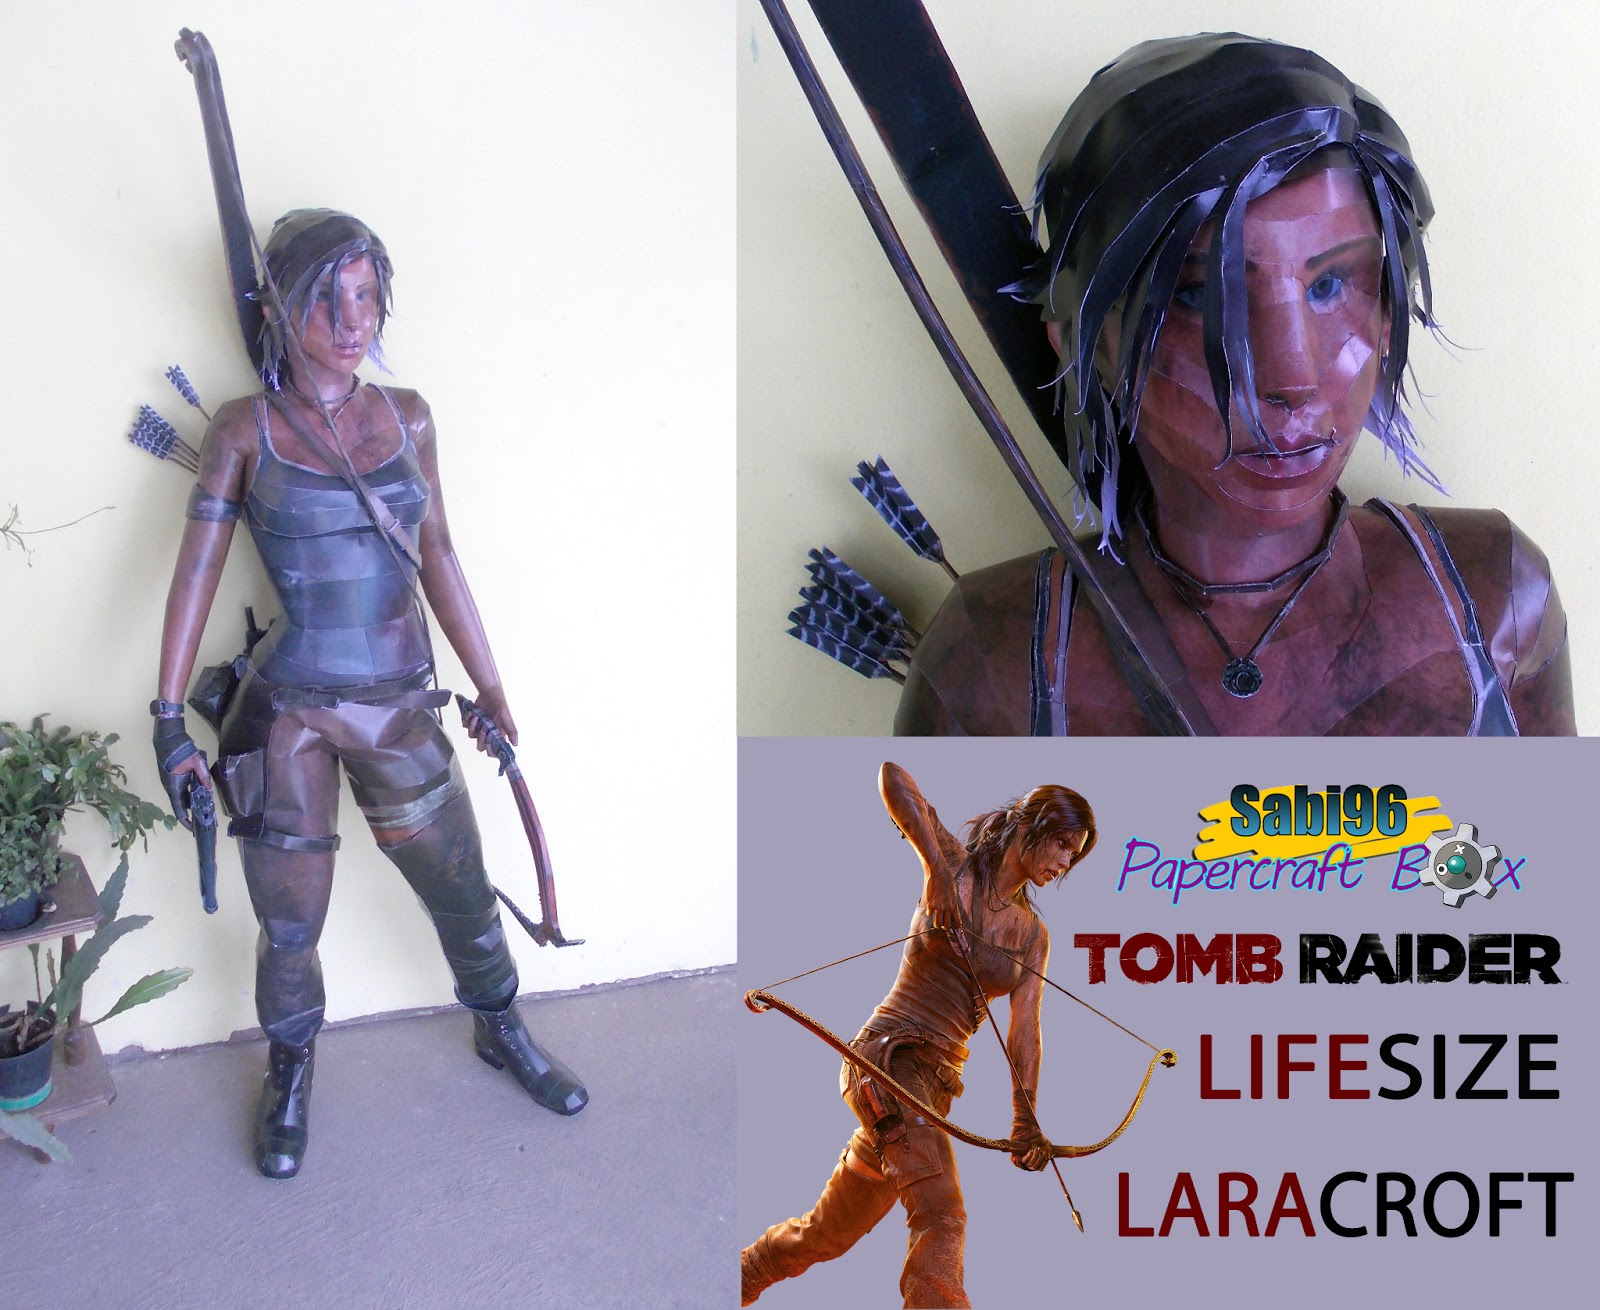 Tomb Raider Lara Croft Papercraft 2013 Reboot Version